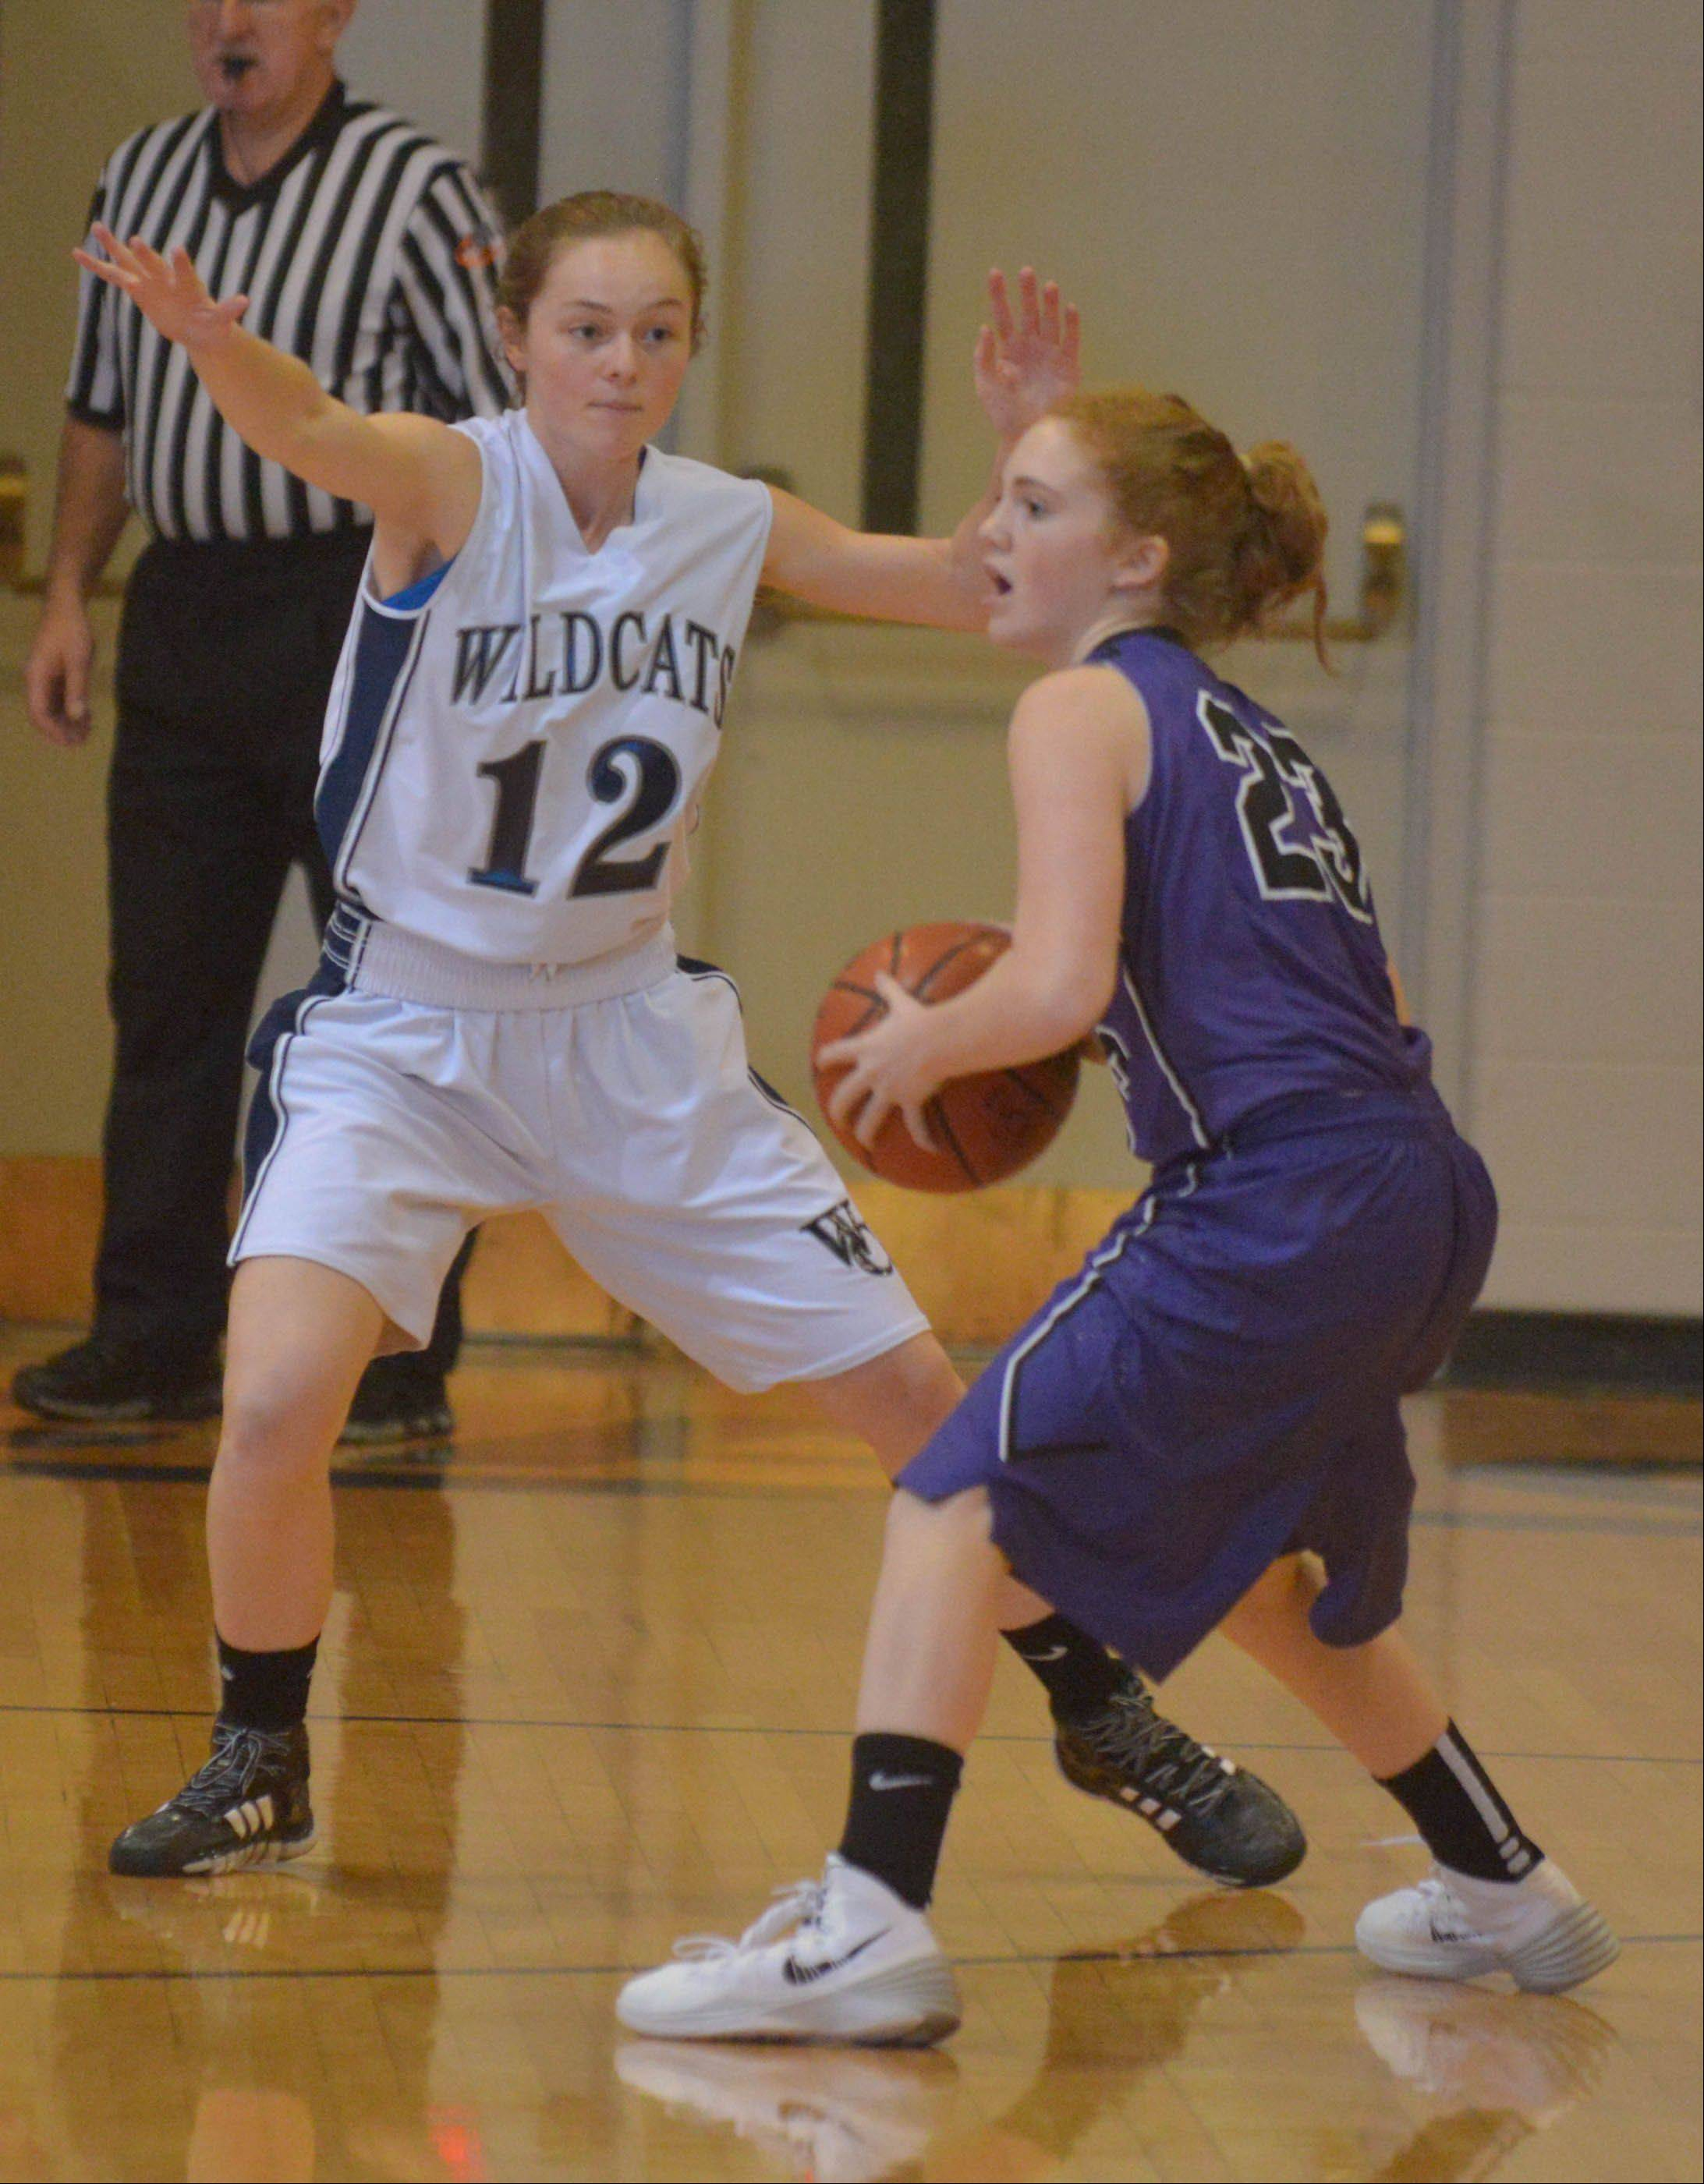 Mae Elizabeth Gimre of West Chicago looks to block Lauren Porcelli of Downers Grove during the Downers Grove North at West Chicago girls basketball game Thursday.